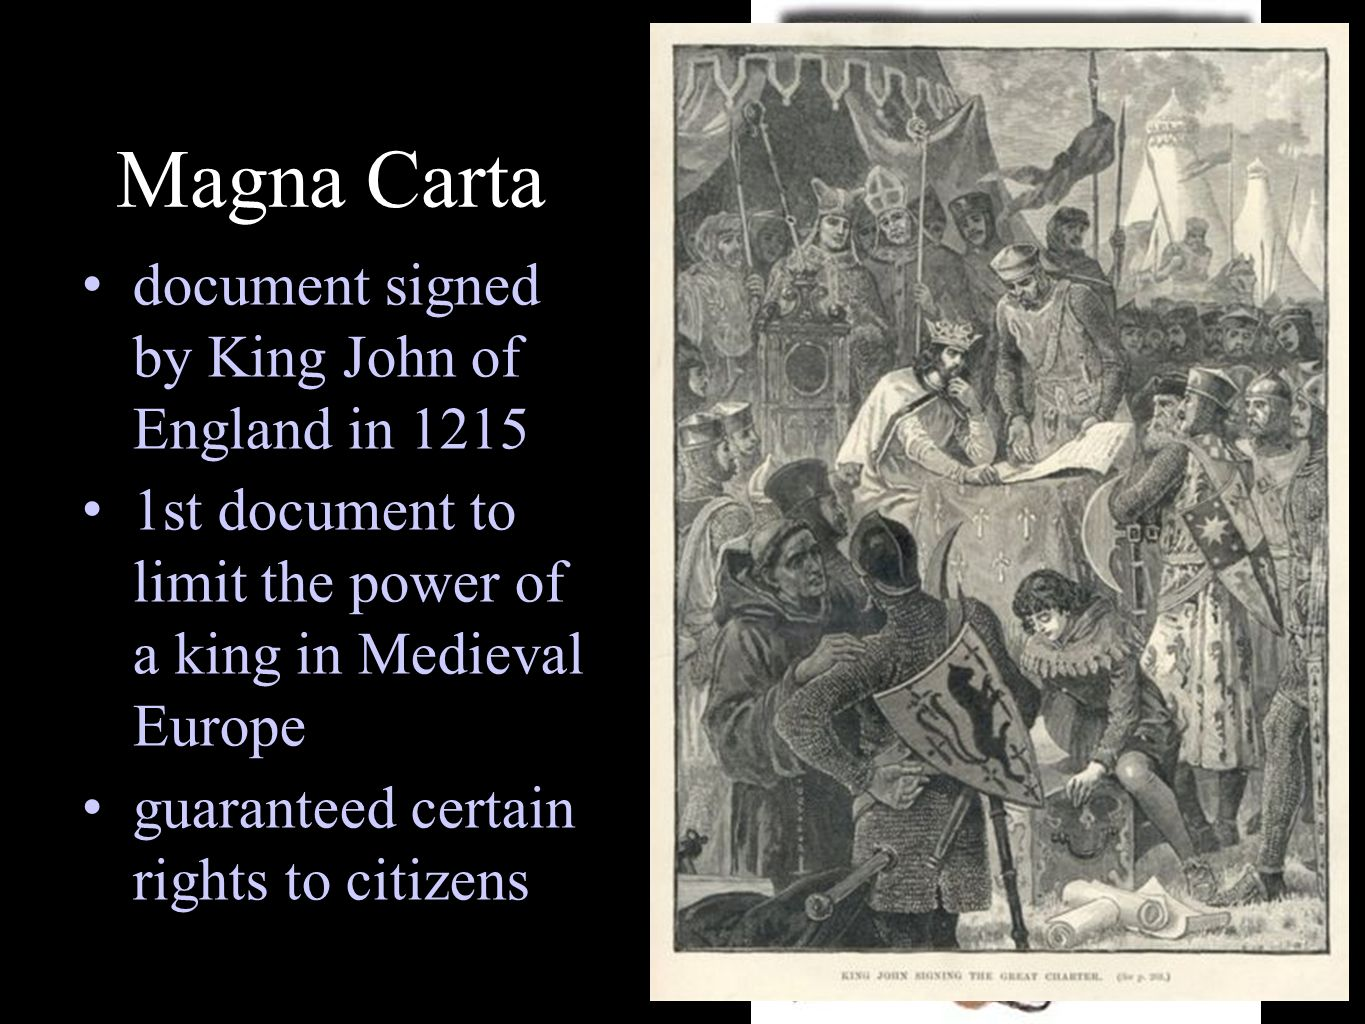 Magna Carta document signed by King John of England in 1215